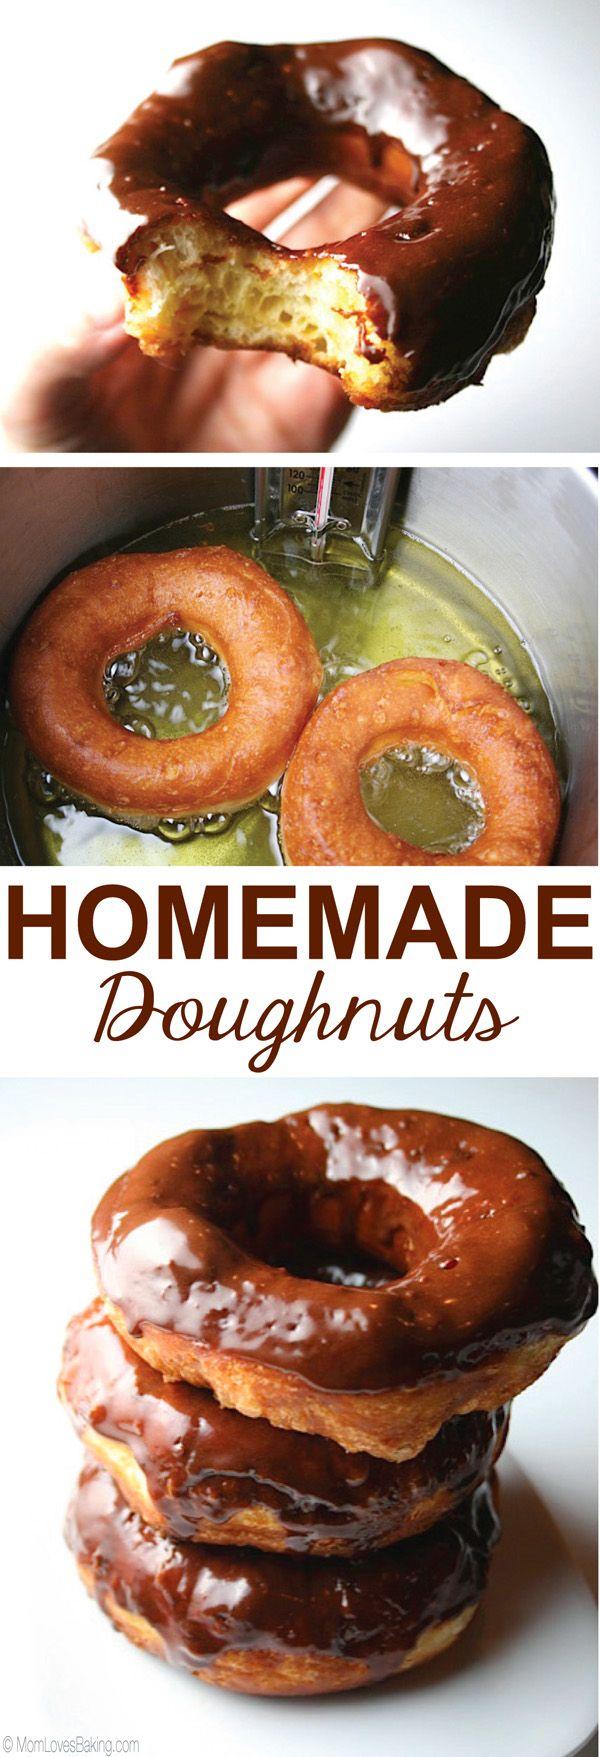 Homemade Doughnuts are canned biscuits shaped into donuts, fried in oil and dipped in icing or cinnamon sugar. Find the full recipe on MomLovesBaking.com